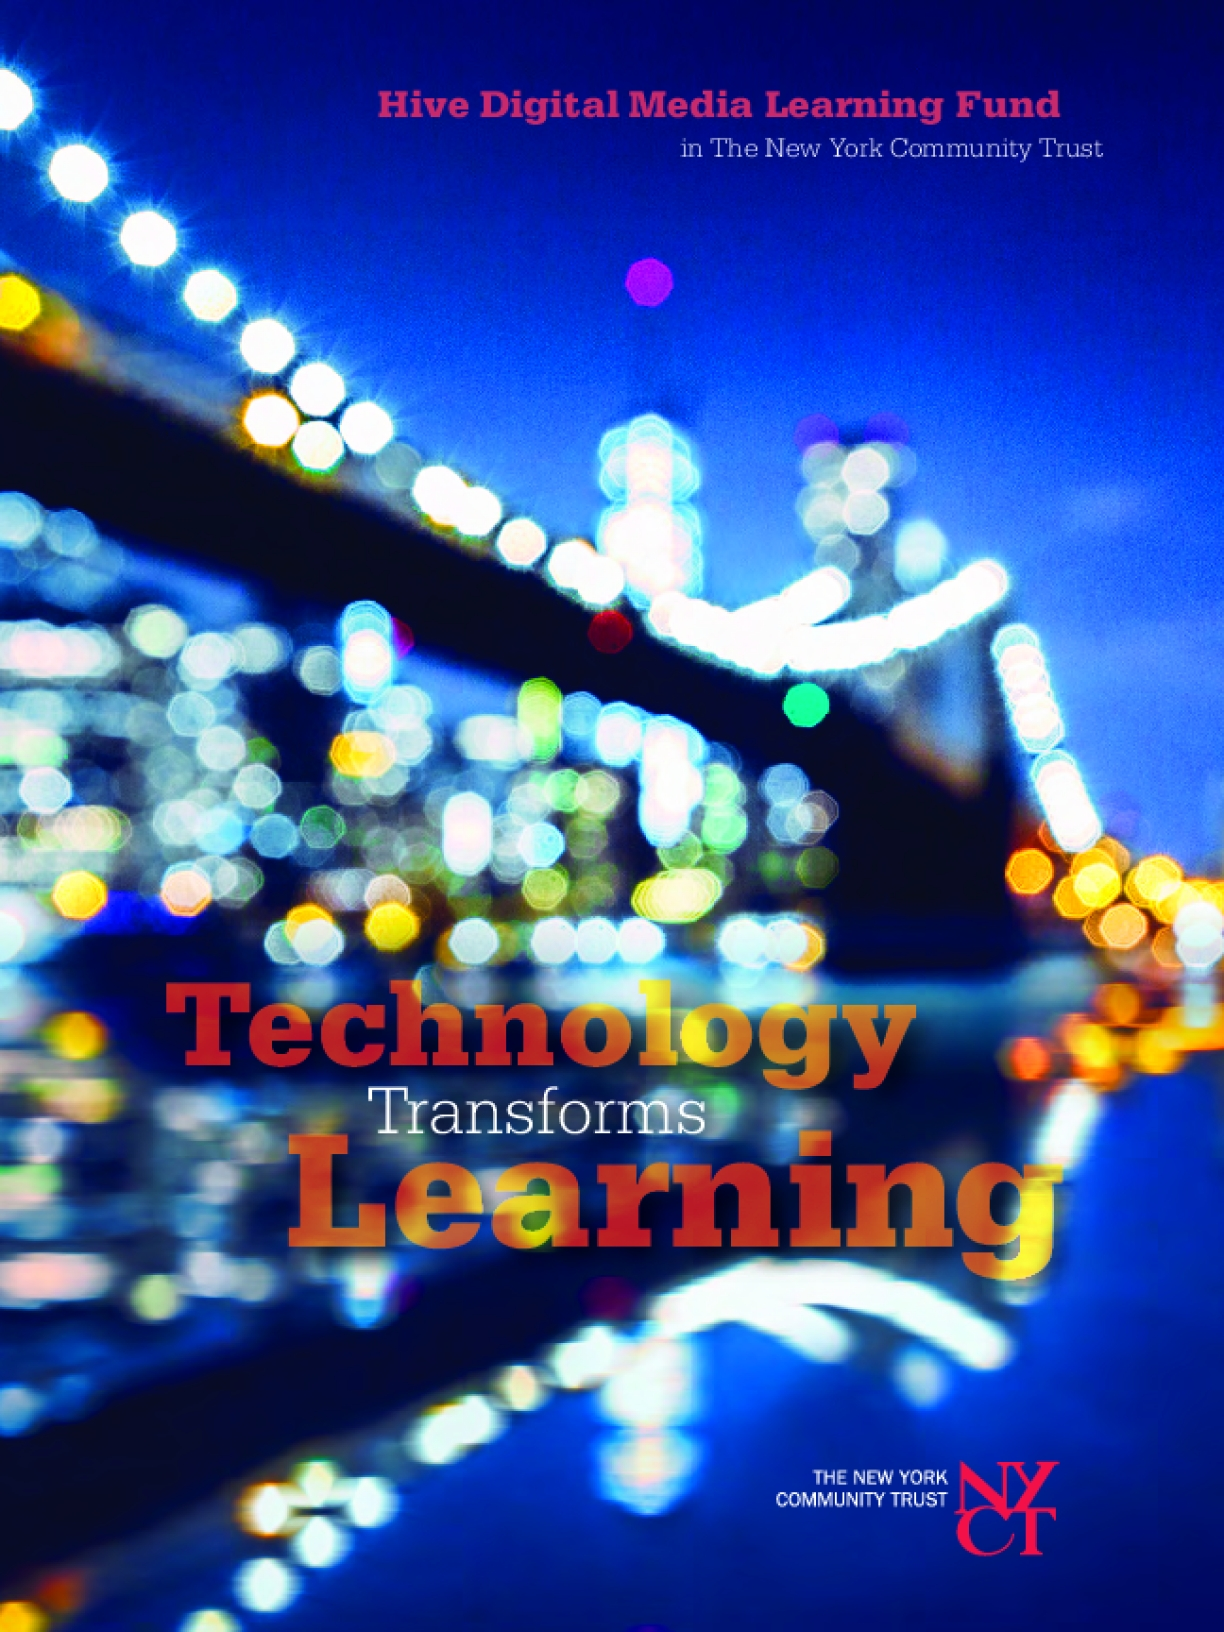 Technology Transforms Learning: A Report on the Hive Digital Media Learning Fund